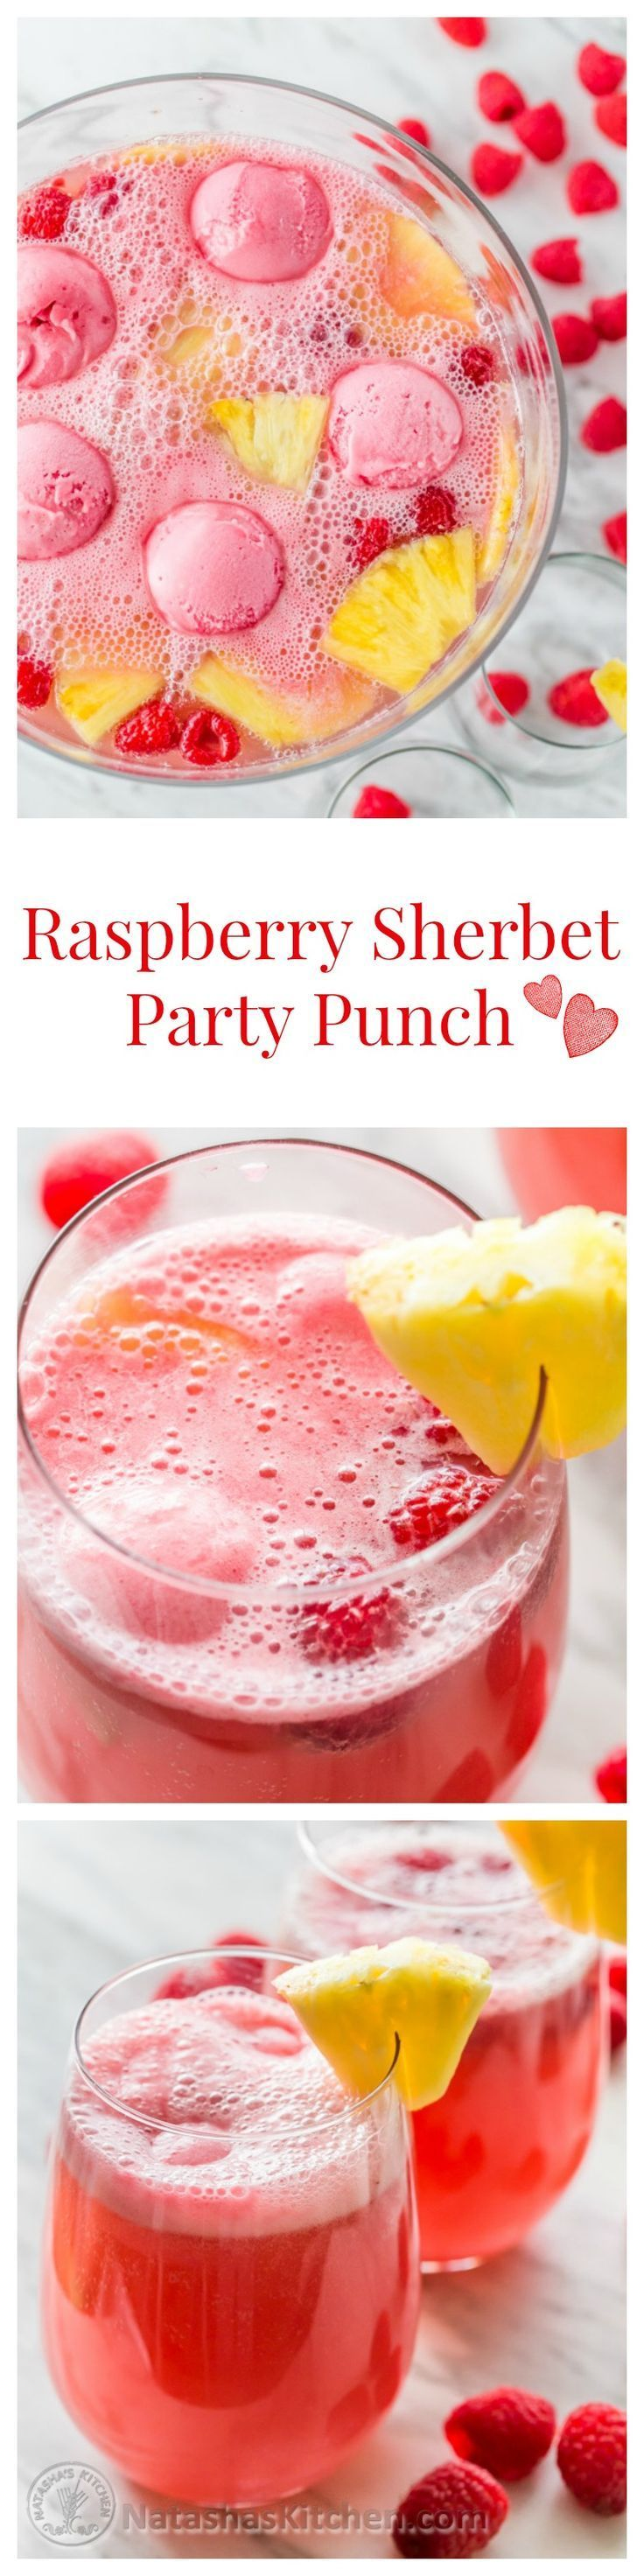 Schön This Sherbet Party Punch Is Perfect For Potlucks, Baby Showers Valentines  Day! Natashaskitchen  Get Free Ray Ban Sunglasses For Gift Now.